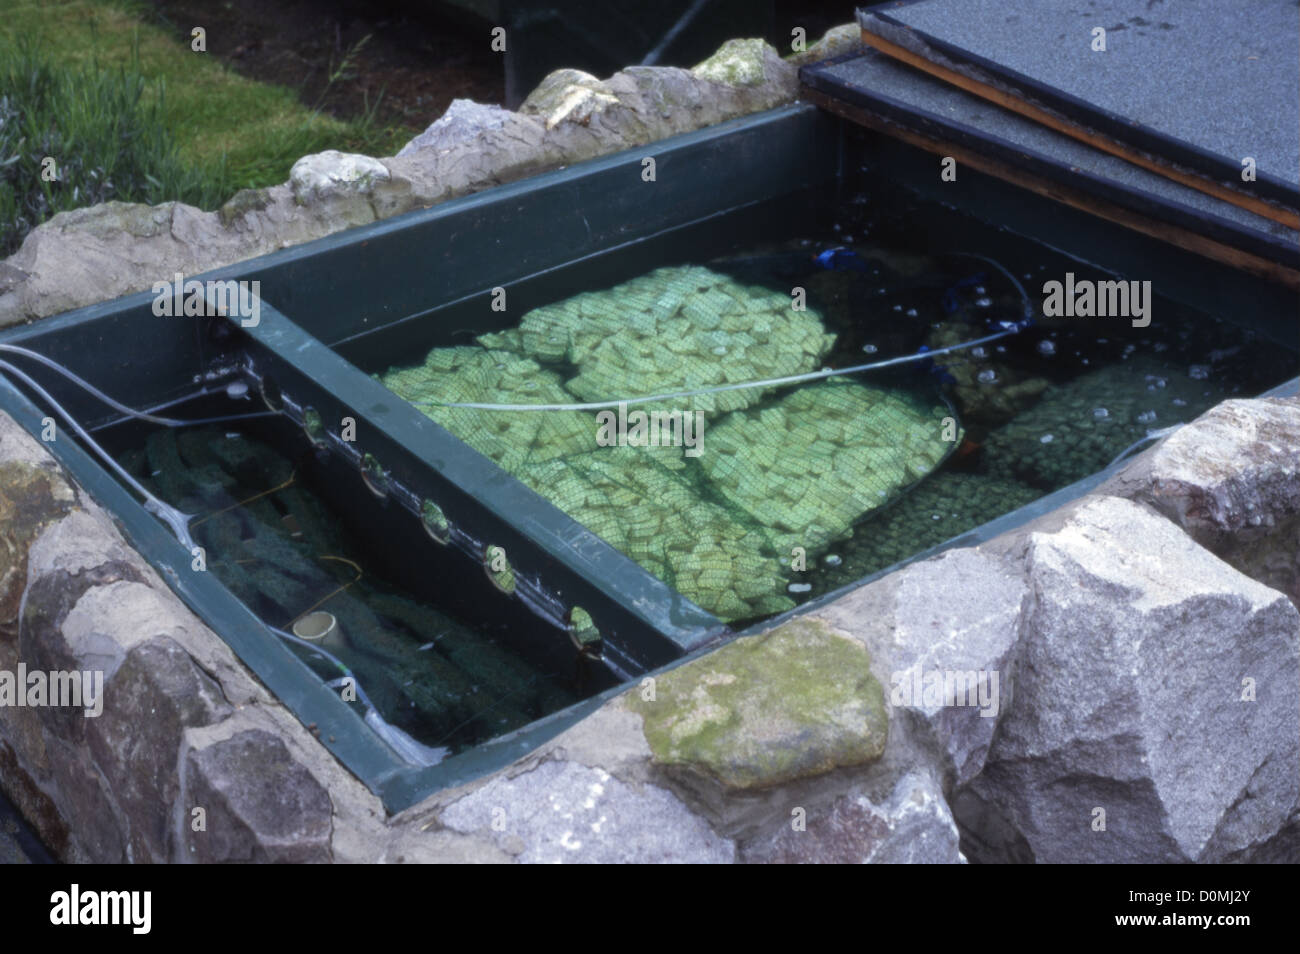 Filter chambers for raised koi pond stock photo royalty for Koi fish pond filter